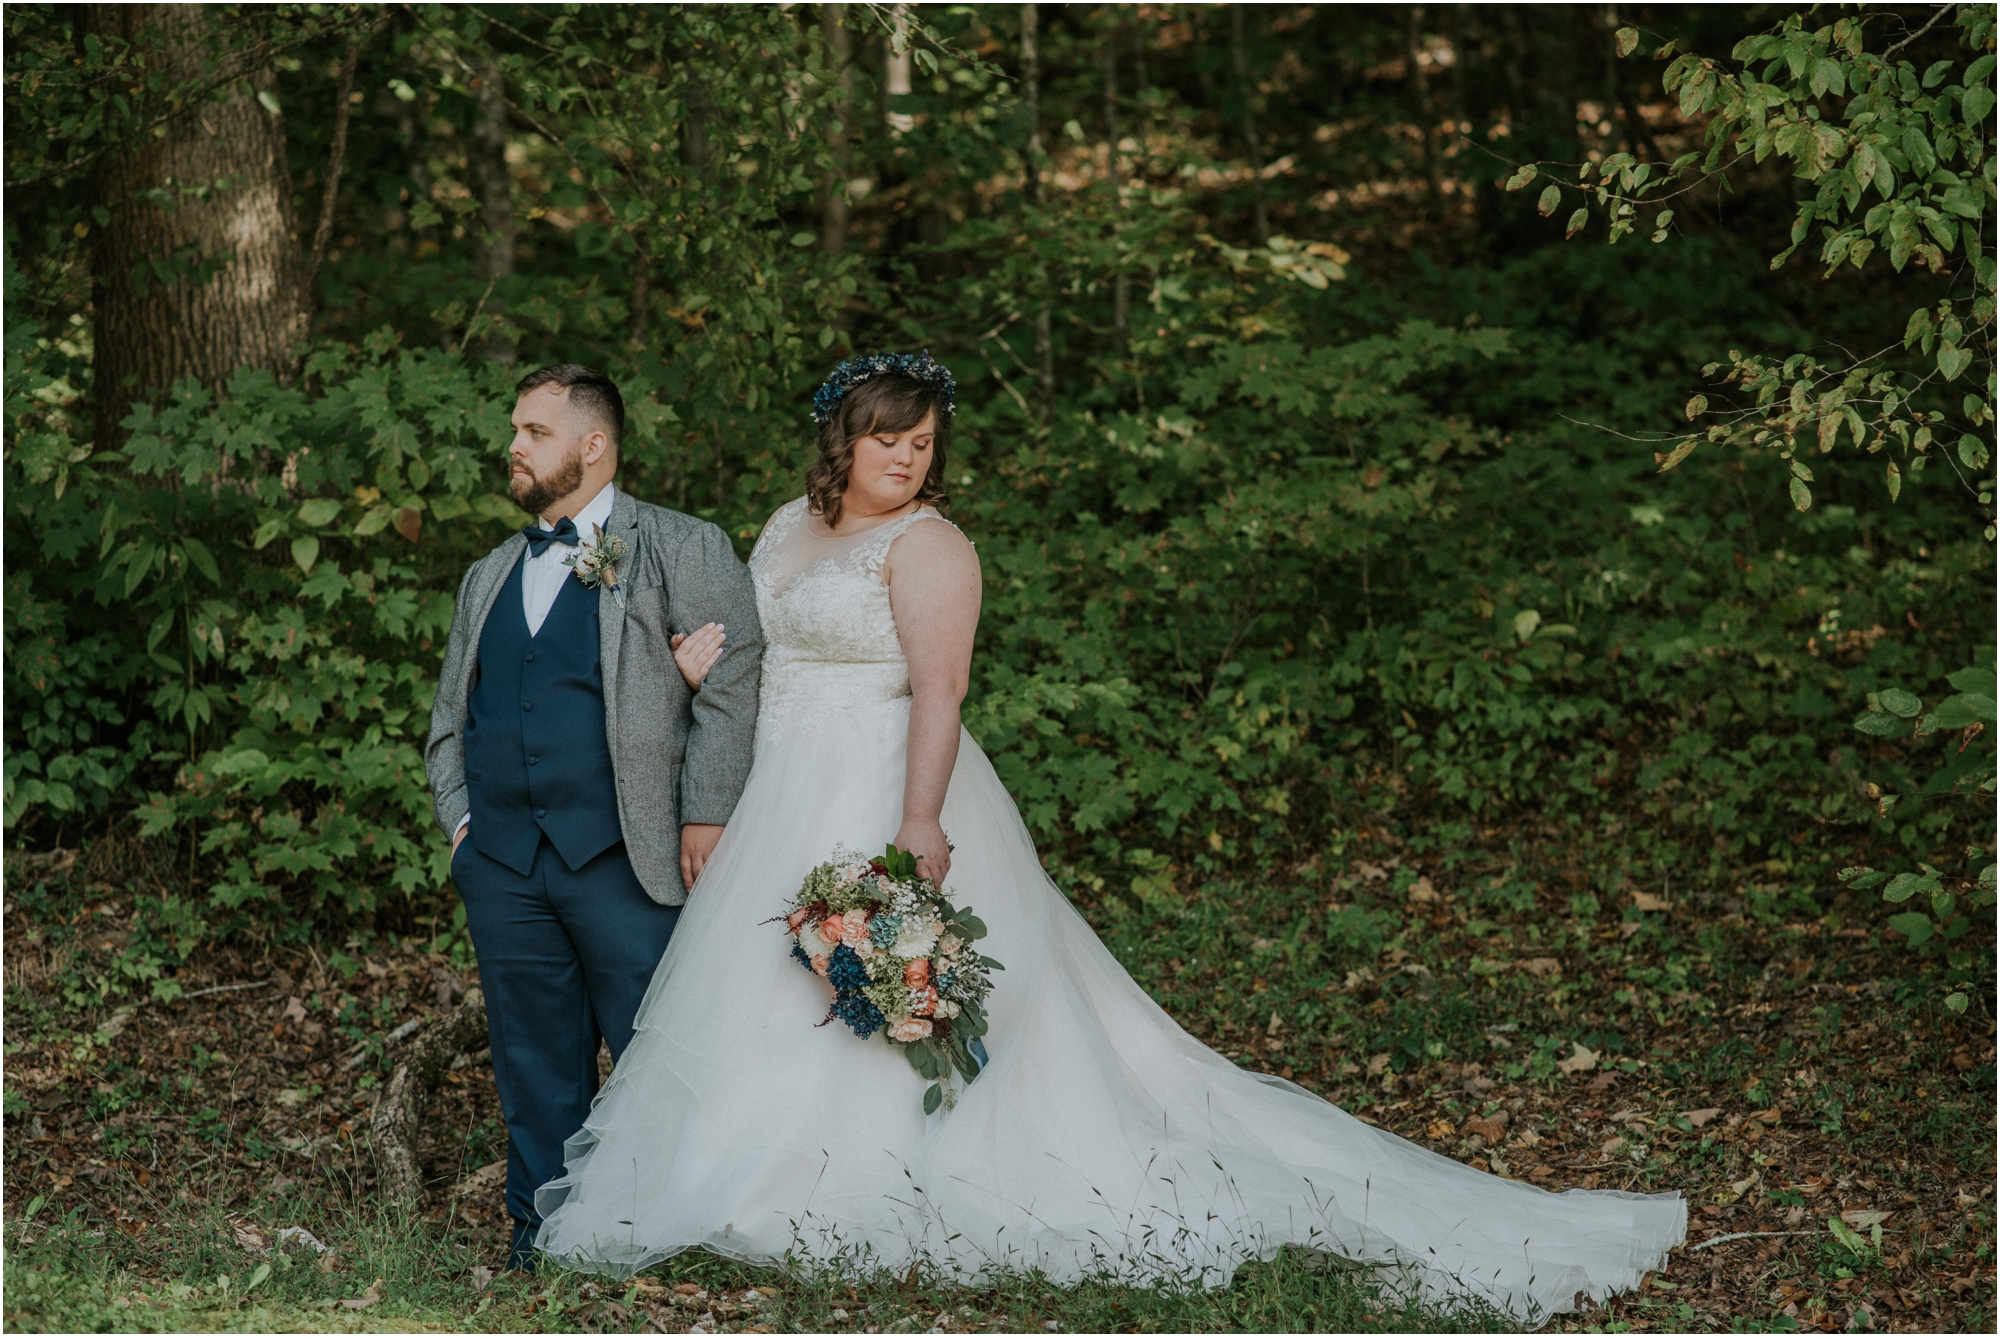 caryville-robbins-middle-tennessee-intimate-cozy-fall-navy-rustic-backyard-wedding_0048.jpg